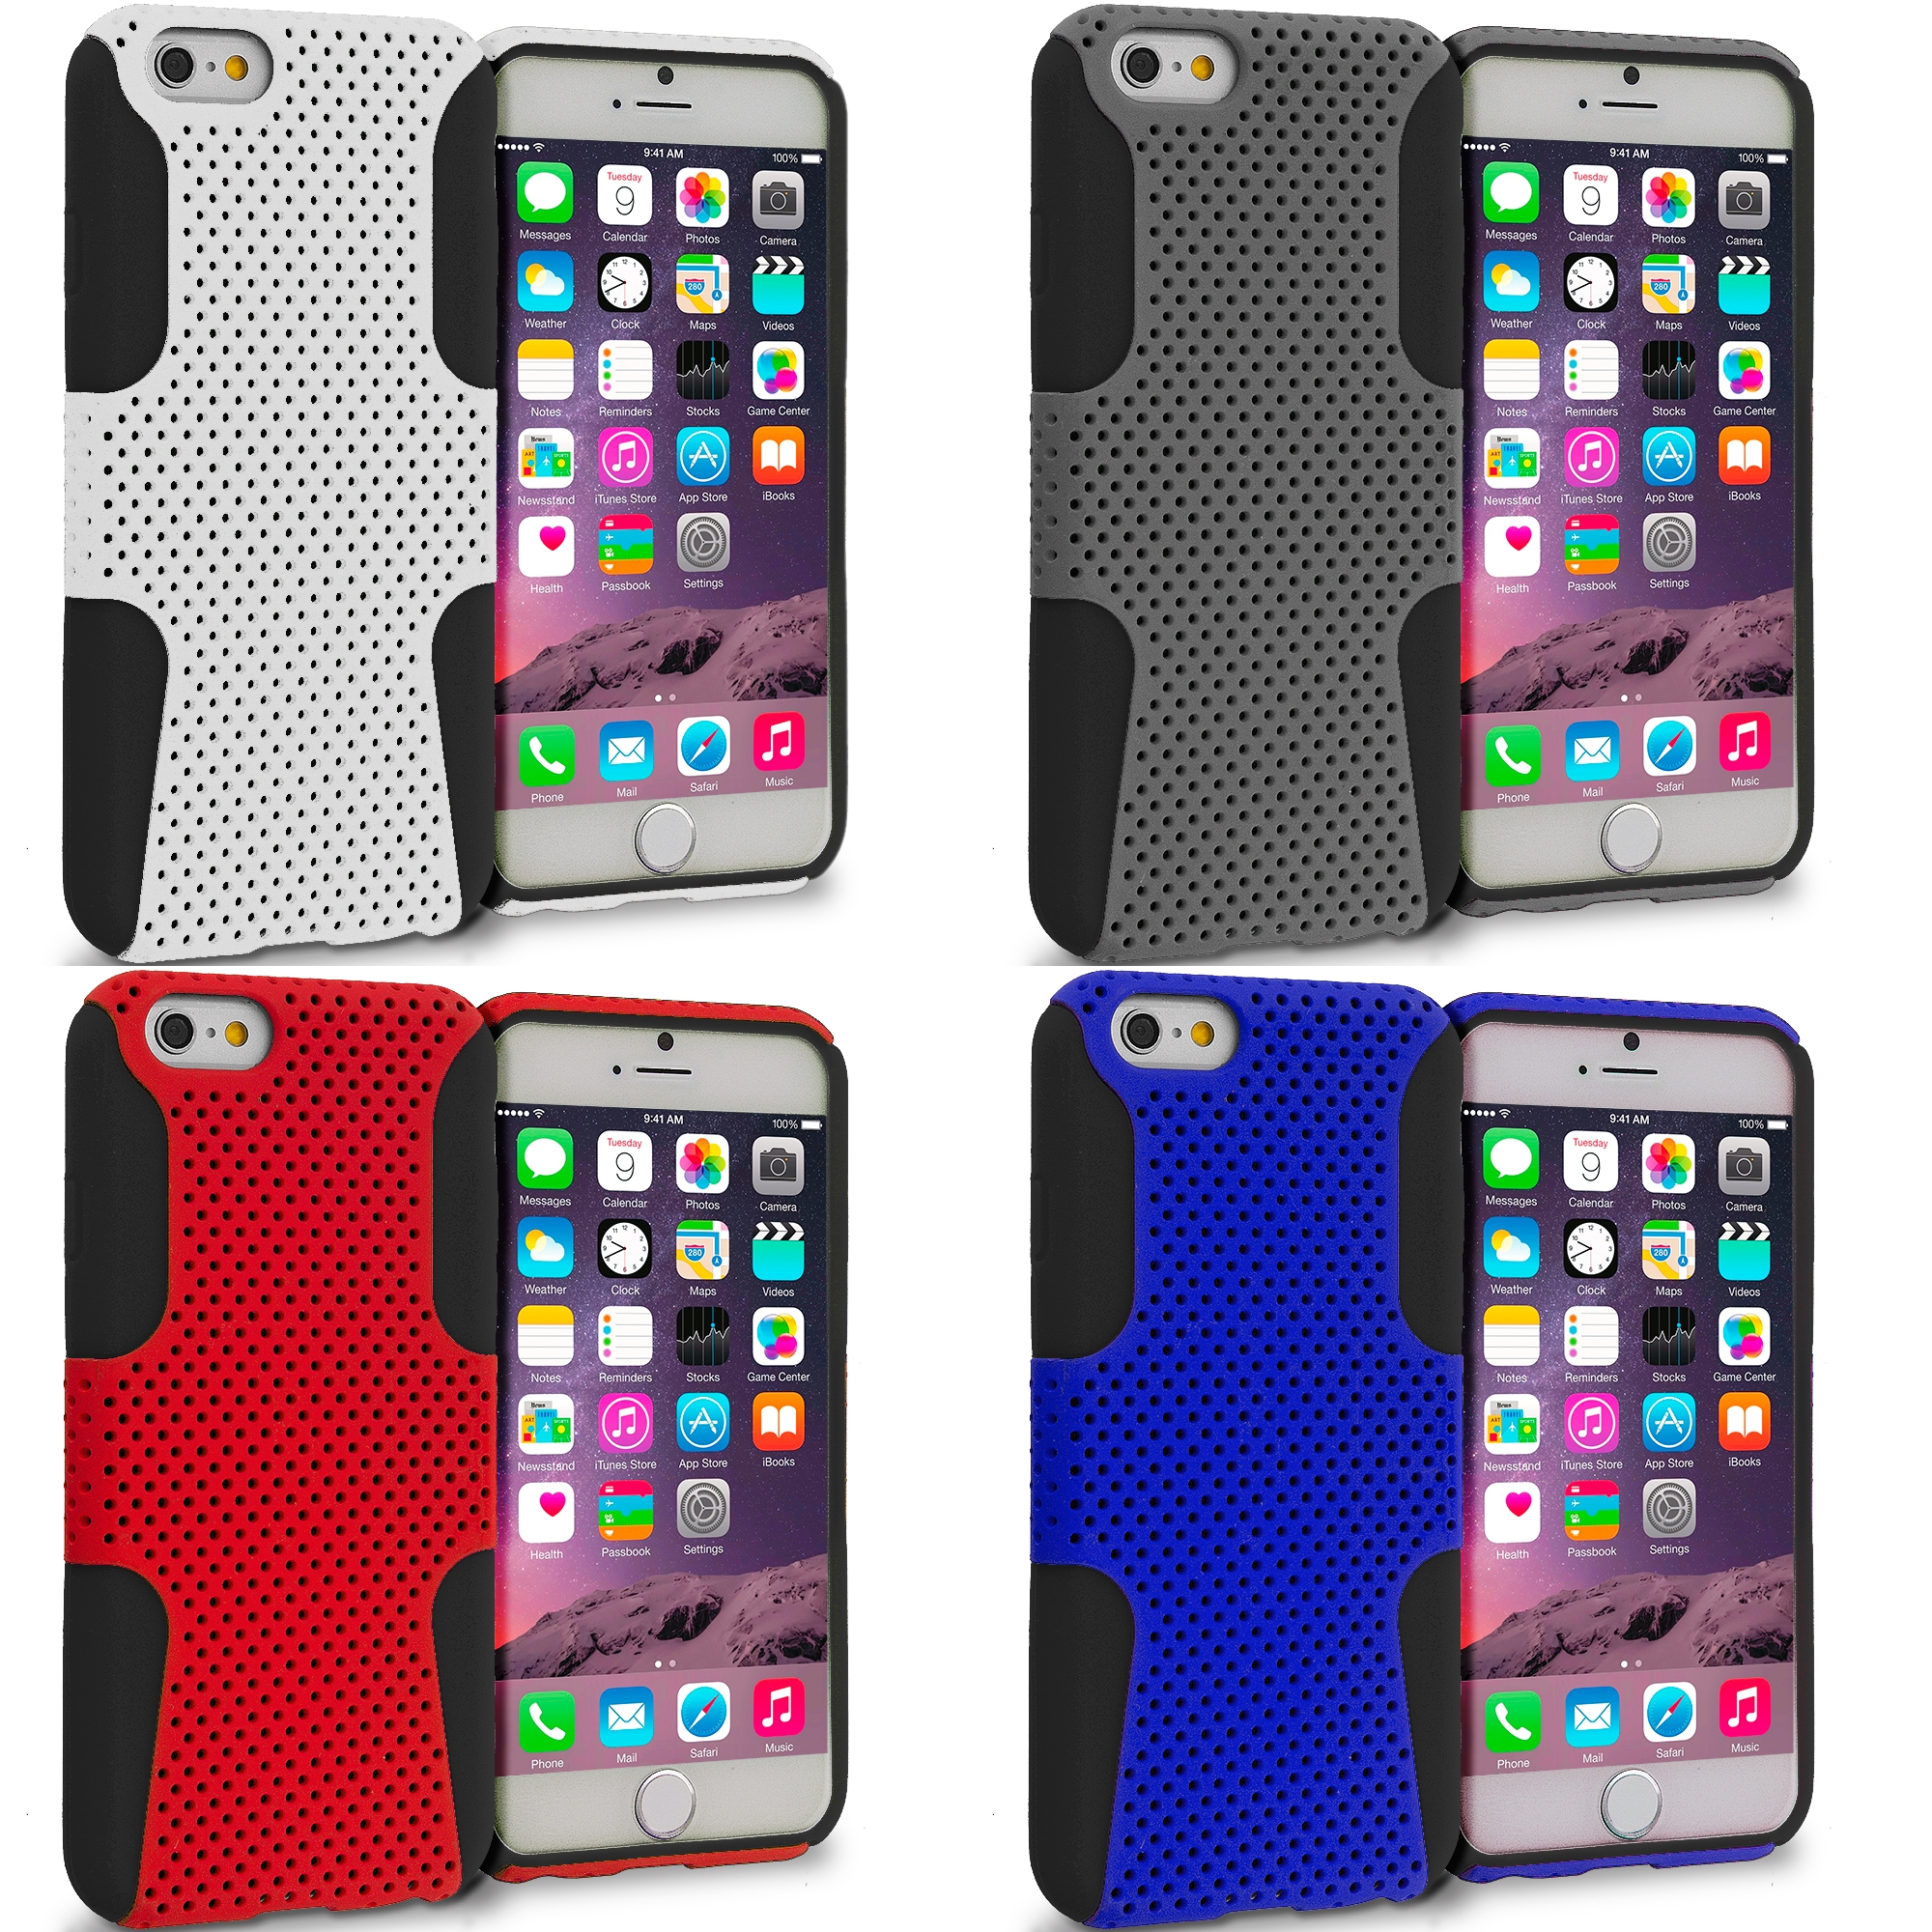 Apple iPhone 6 6S (4.7) 4 in 1 Combo Bundle Pack - Hybrid Mesh Hard/Soft Case Cover